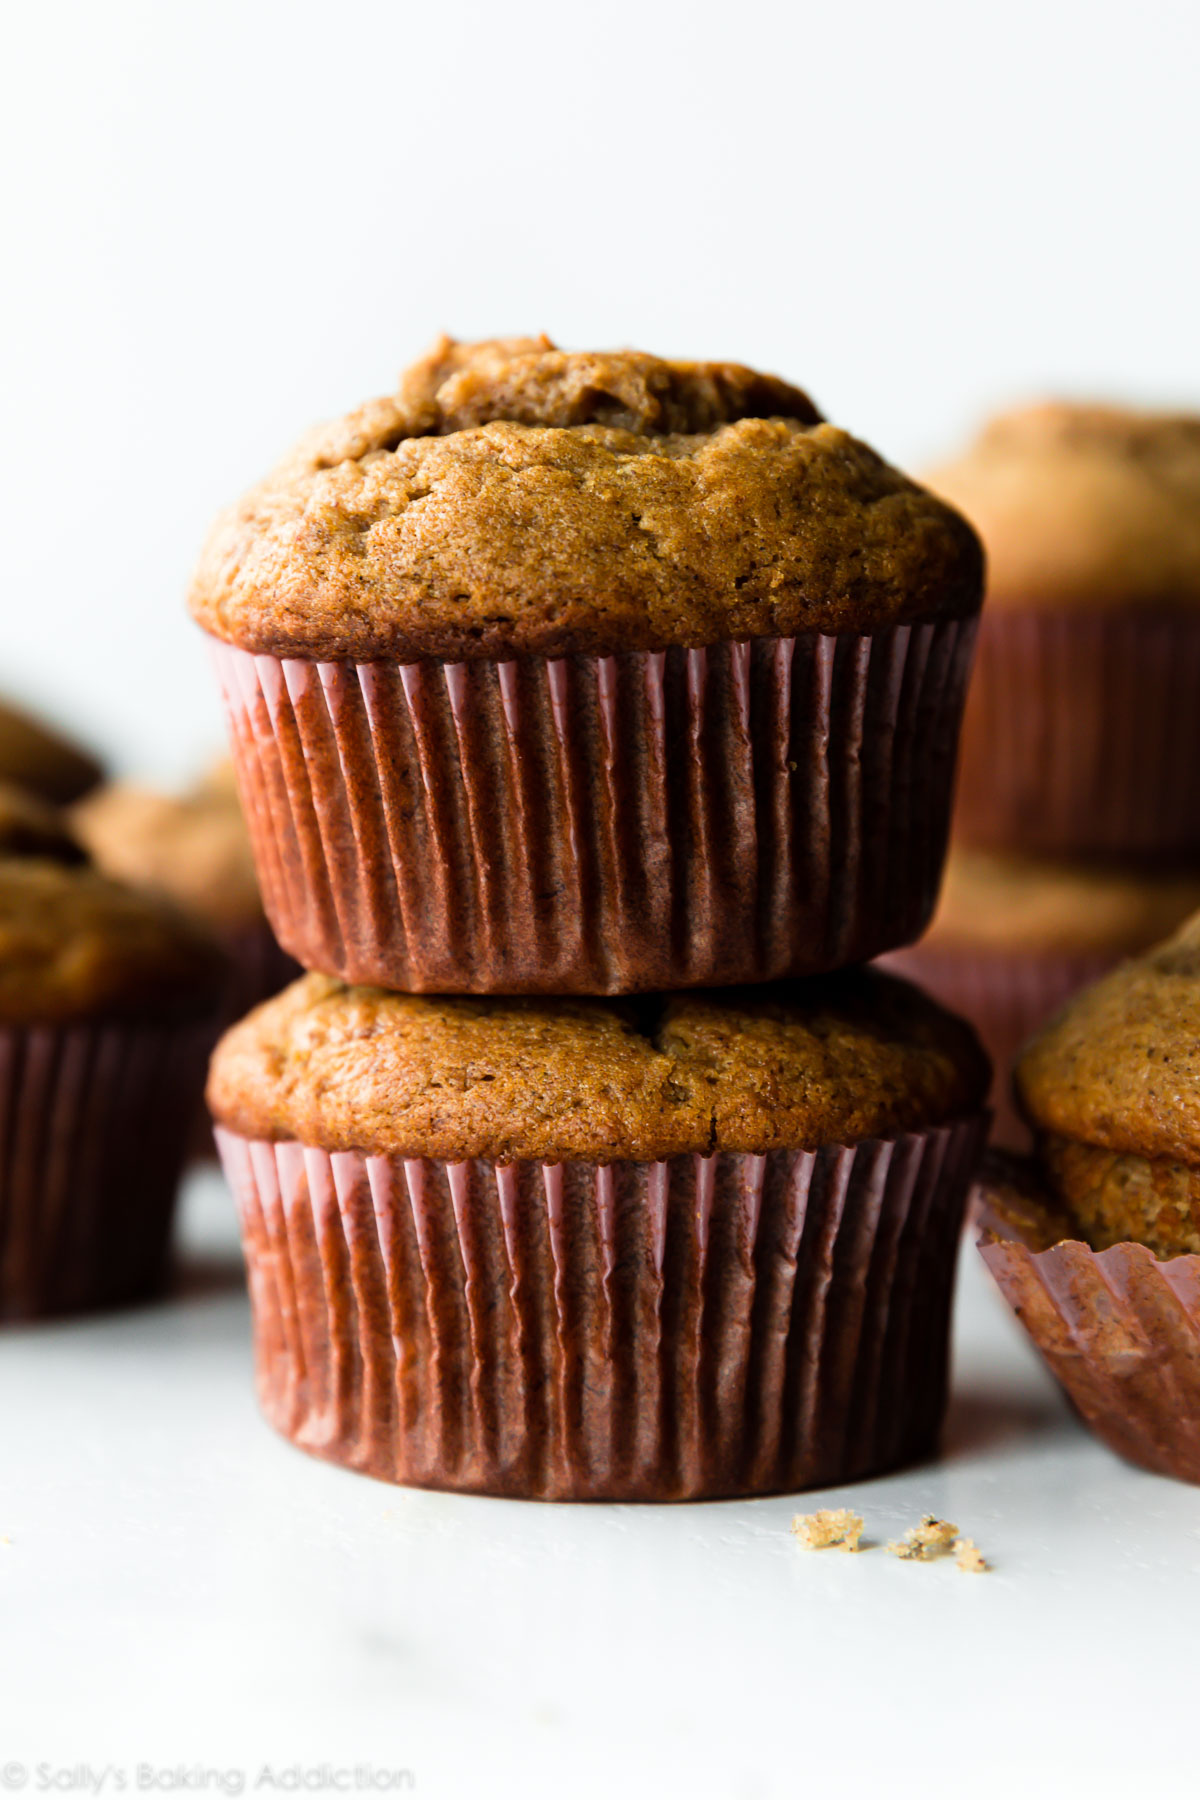 jpg freeuse download Muffin. Quick easy banana muffins